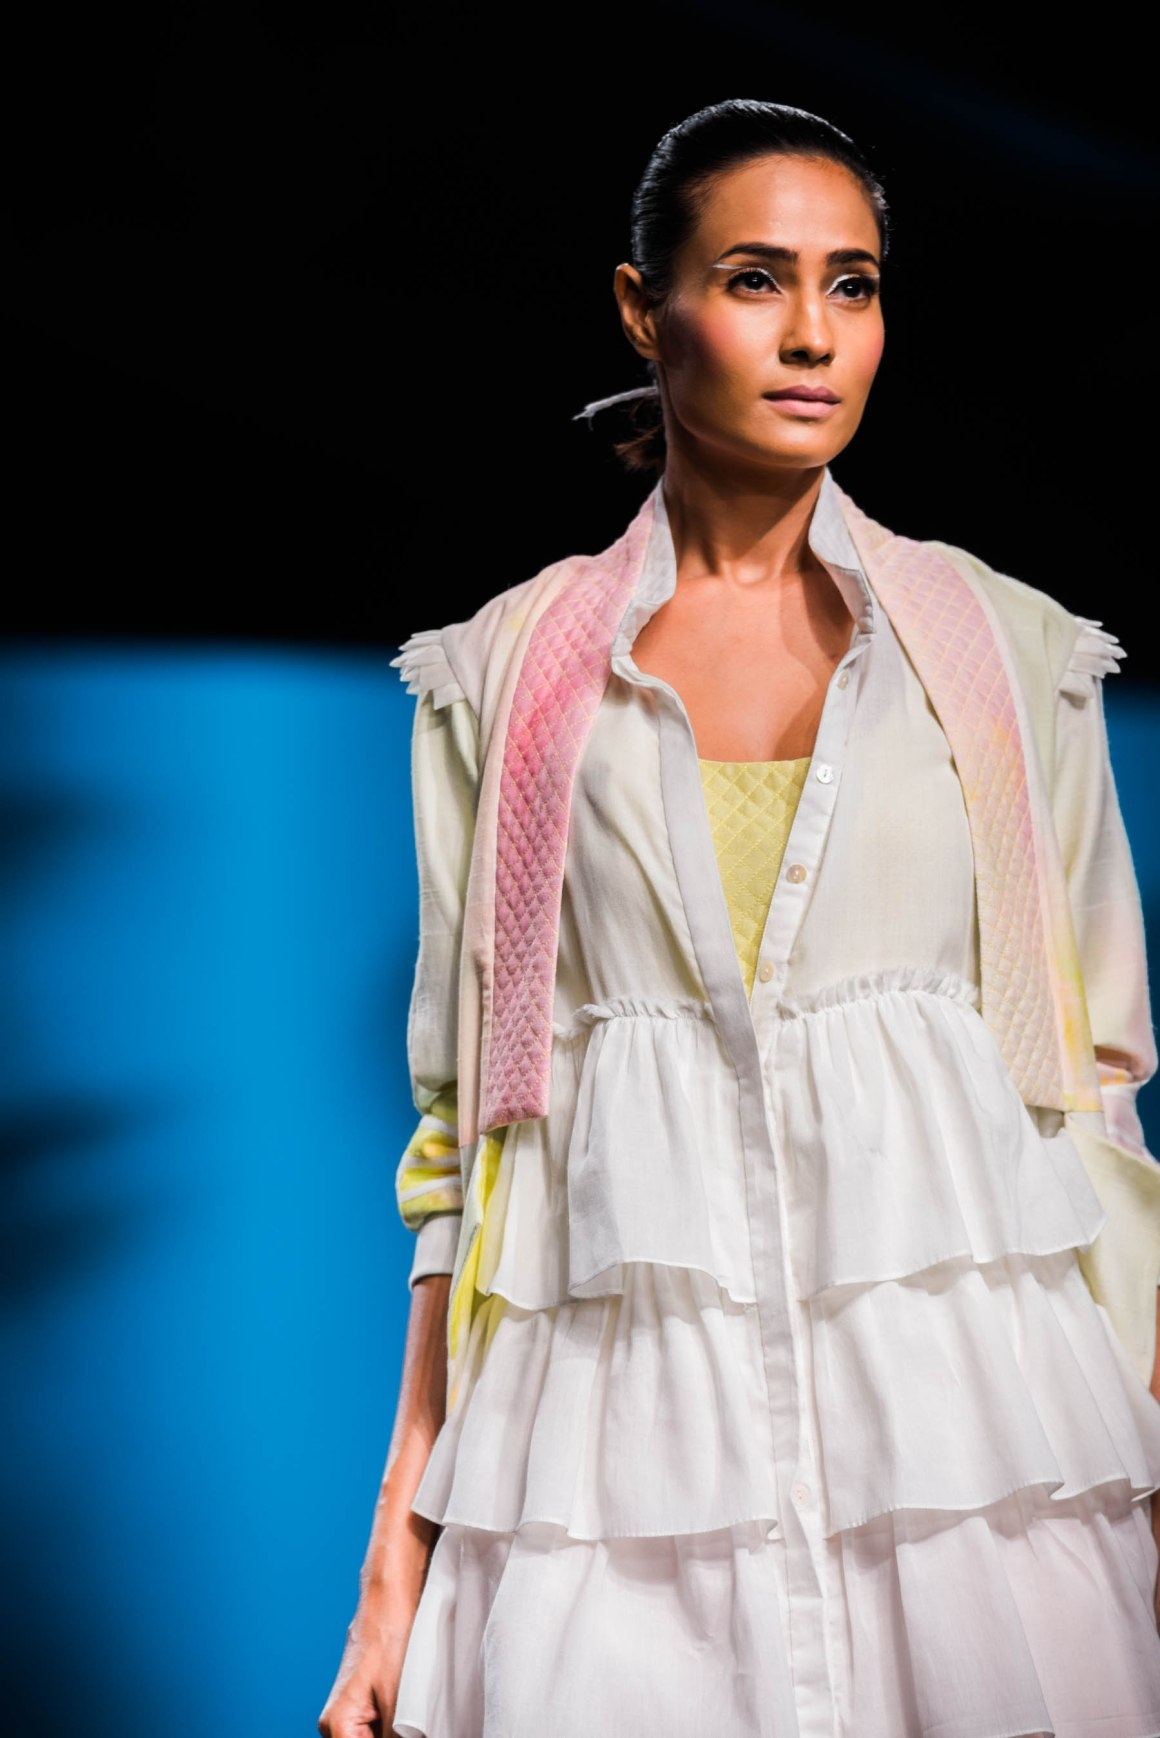 Naina Redhu, Naina.co, Pallavi Singh, Fashion Designer, FDCI, Lotus MakeUp India Fashion Week Spring Summer 2019, LMIFWSS19, LMIFW, India Fashion Week, Fashion Week Delhi, MadeInIndia, Made In India, EyesForFashion, Professional Photographer, Blogger, Fashion Photographer, Lifestyle Photographer, Luxury Photographer, Delhi Photographer, Gurgaon Photographer, Delhi Blogger, Gurgaon Blogger, Indian Blogger